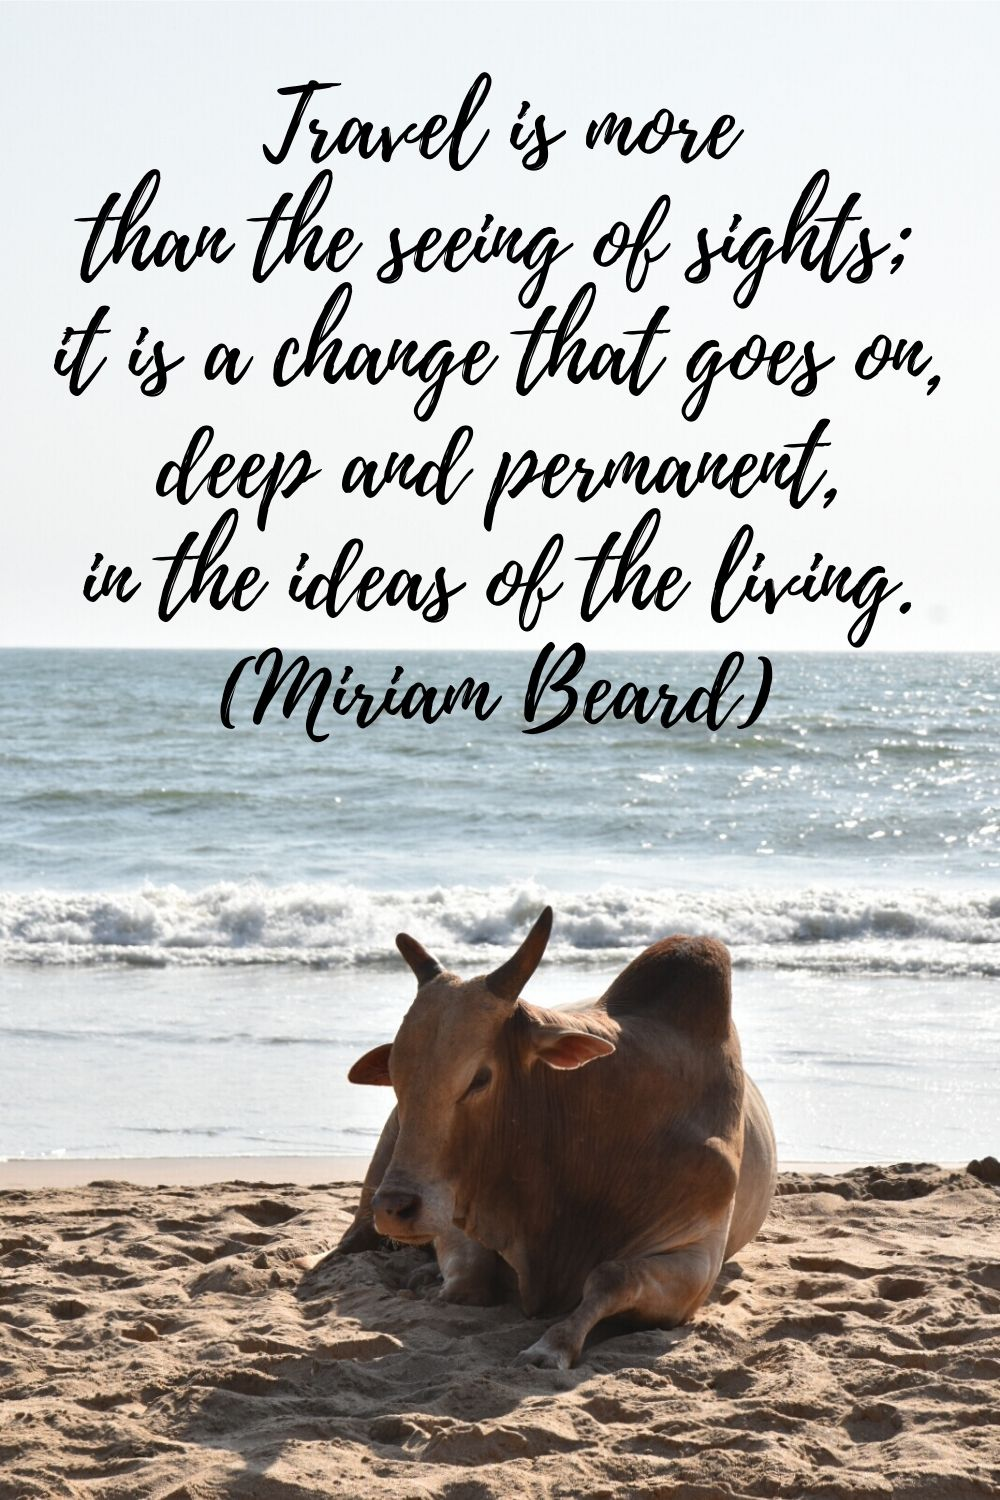 travel quotes by women - Miriam Beard